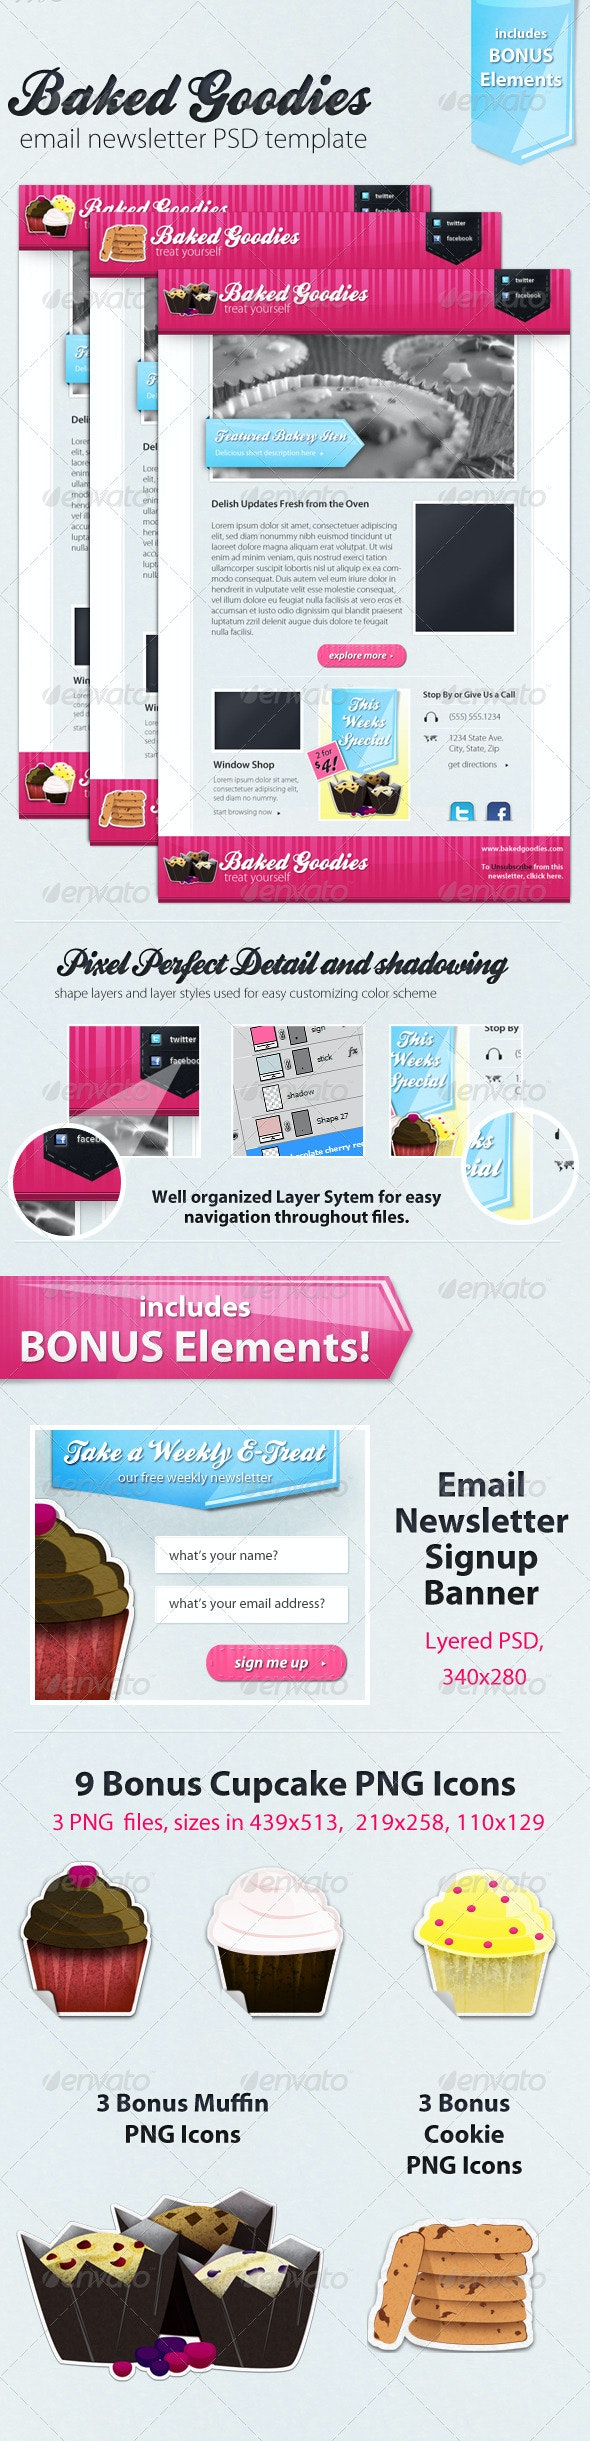 Baked Goodies Email Newsletter PSD Template - E-newsletters Web Elements